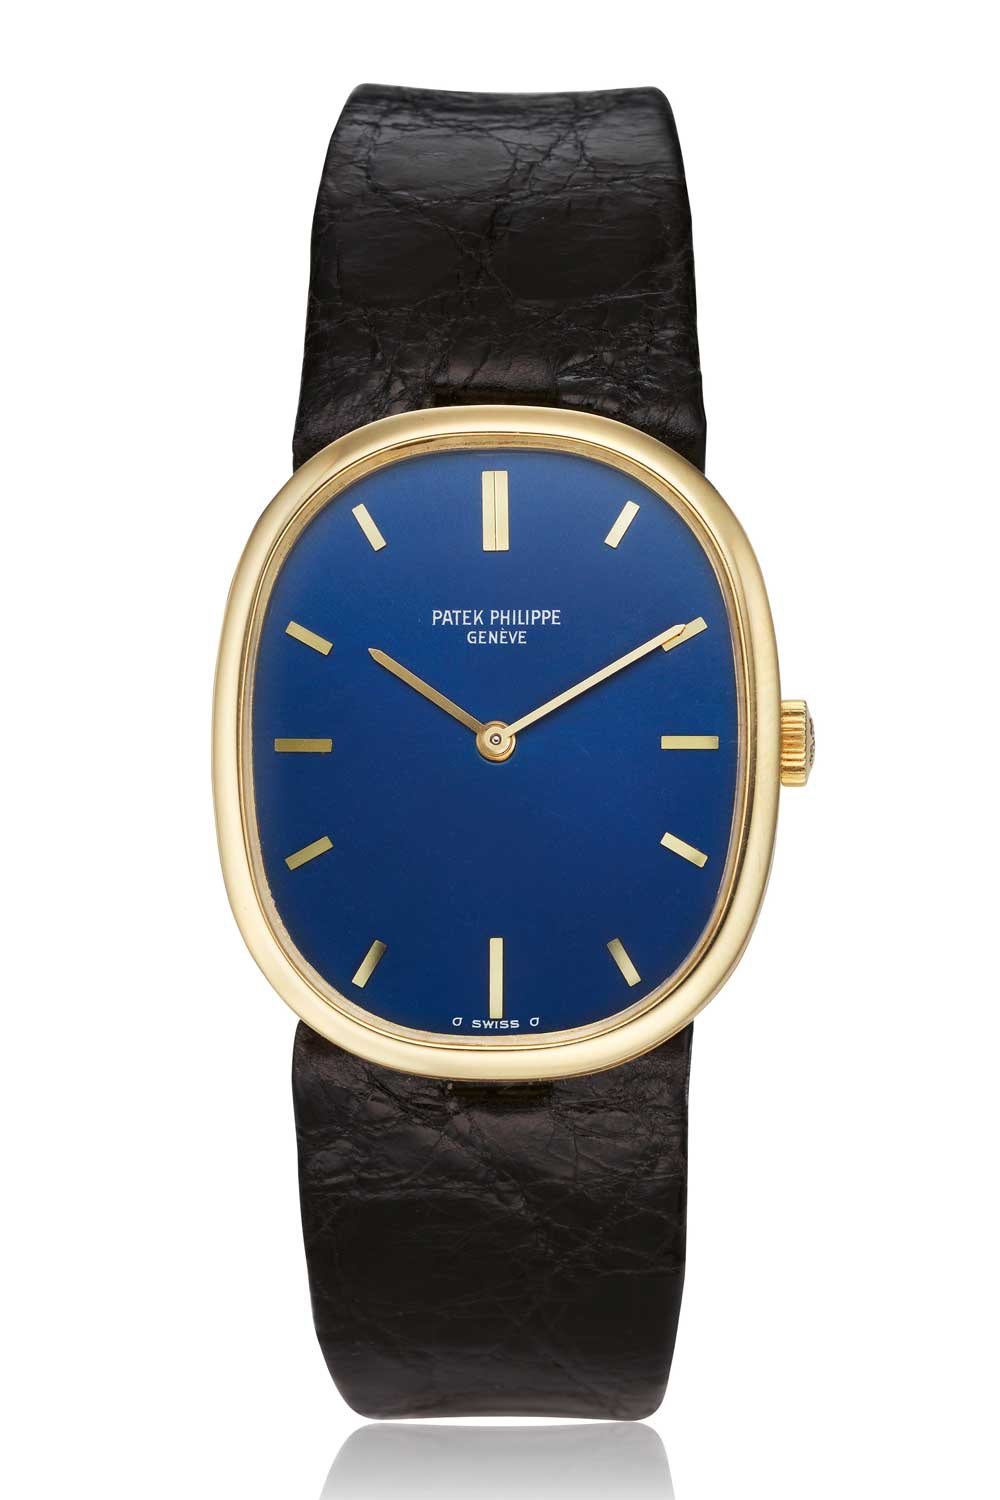 Even with its simple, elliptical shape, the Ellipse made a style statement that was one up over all the other gold watches in the market. (Image:Collectability)